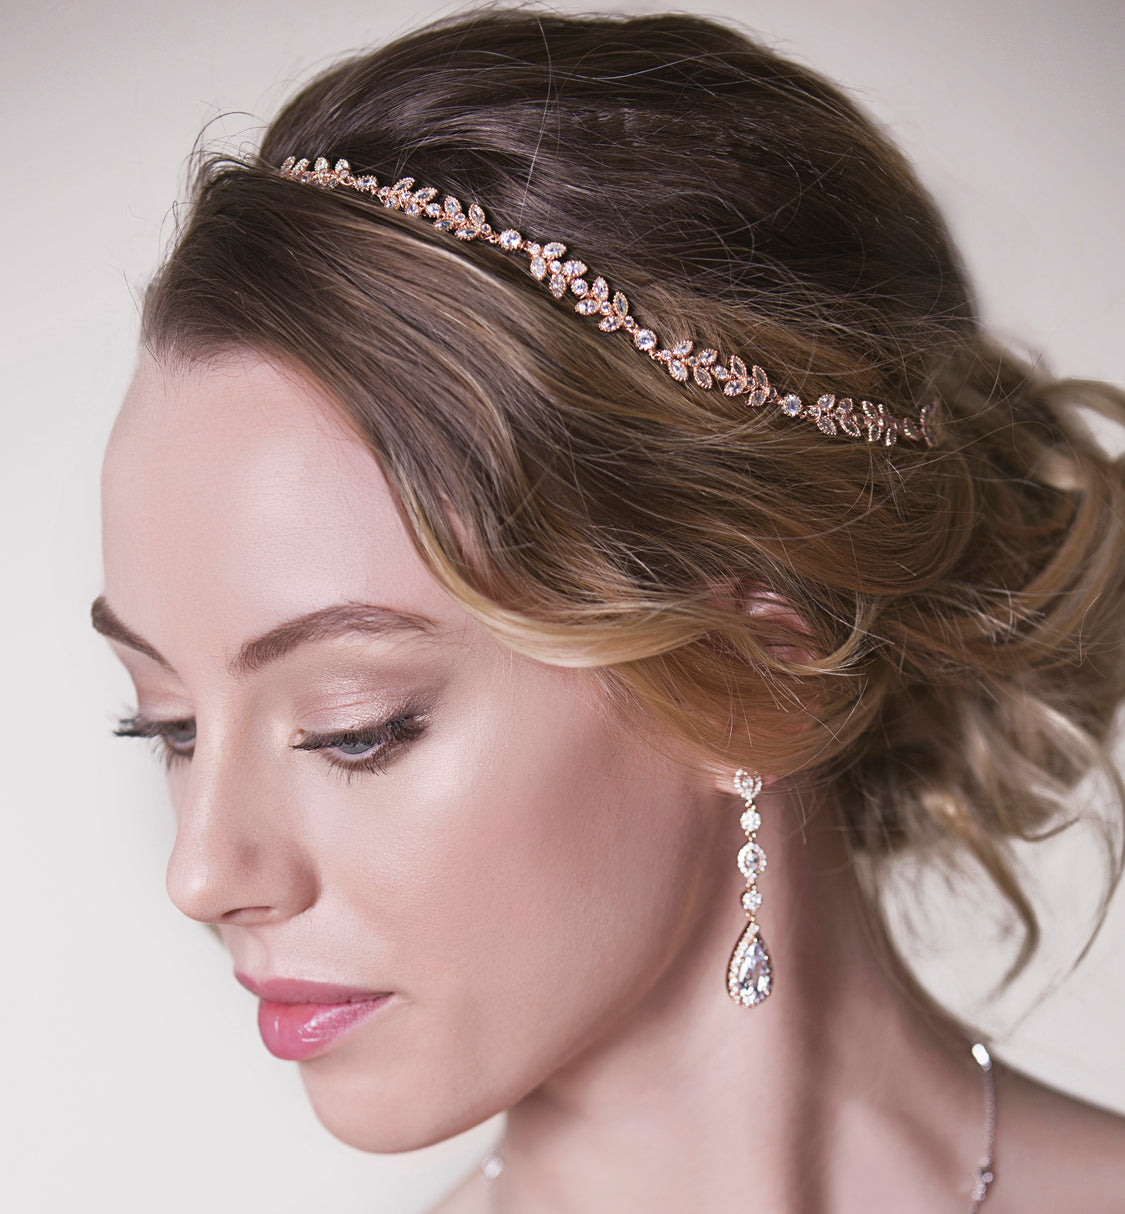 Boho Hair Vine Halo Headpiece